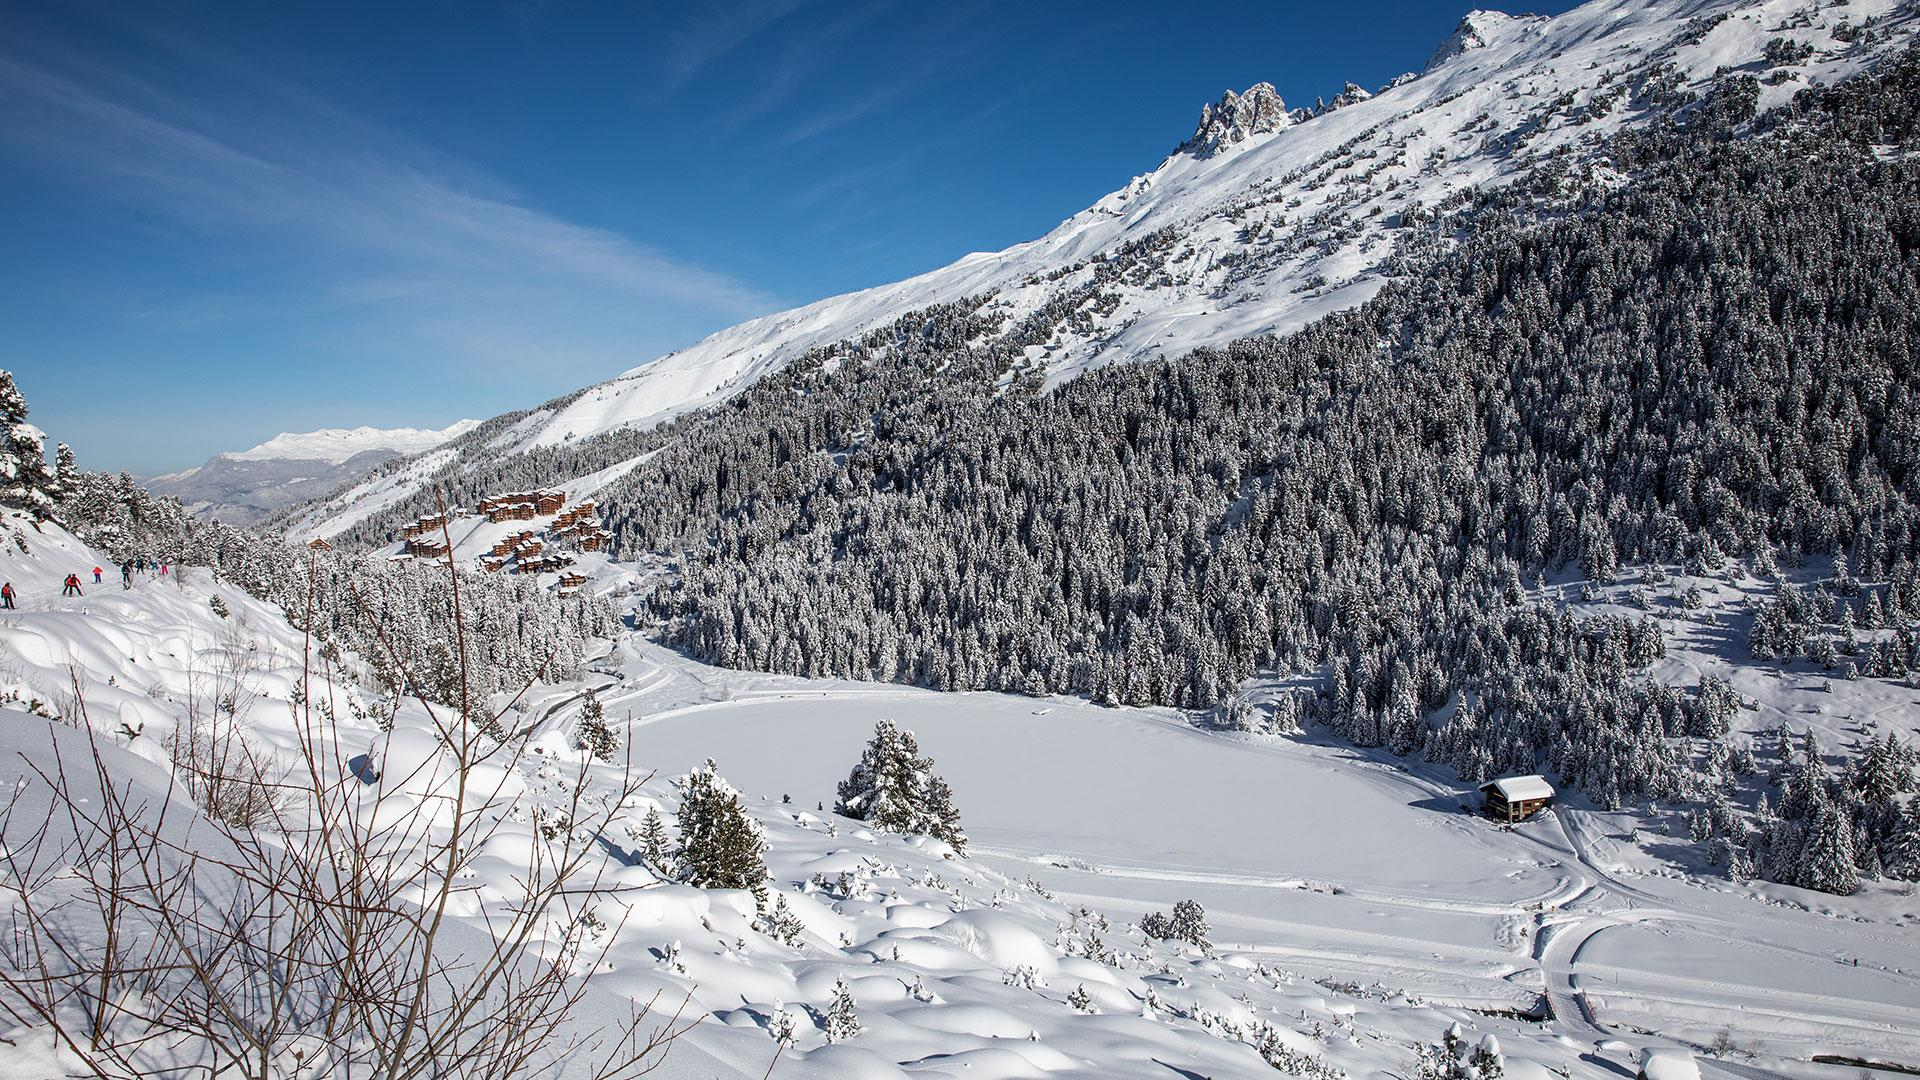 The magic of the forest at the heart of Les 3 Vallées